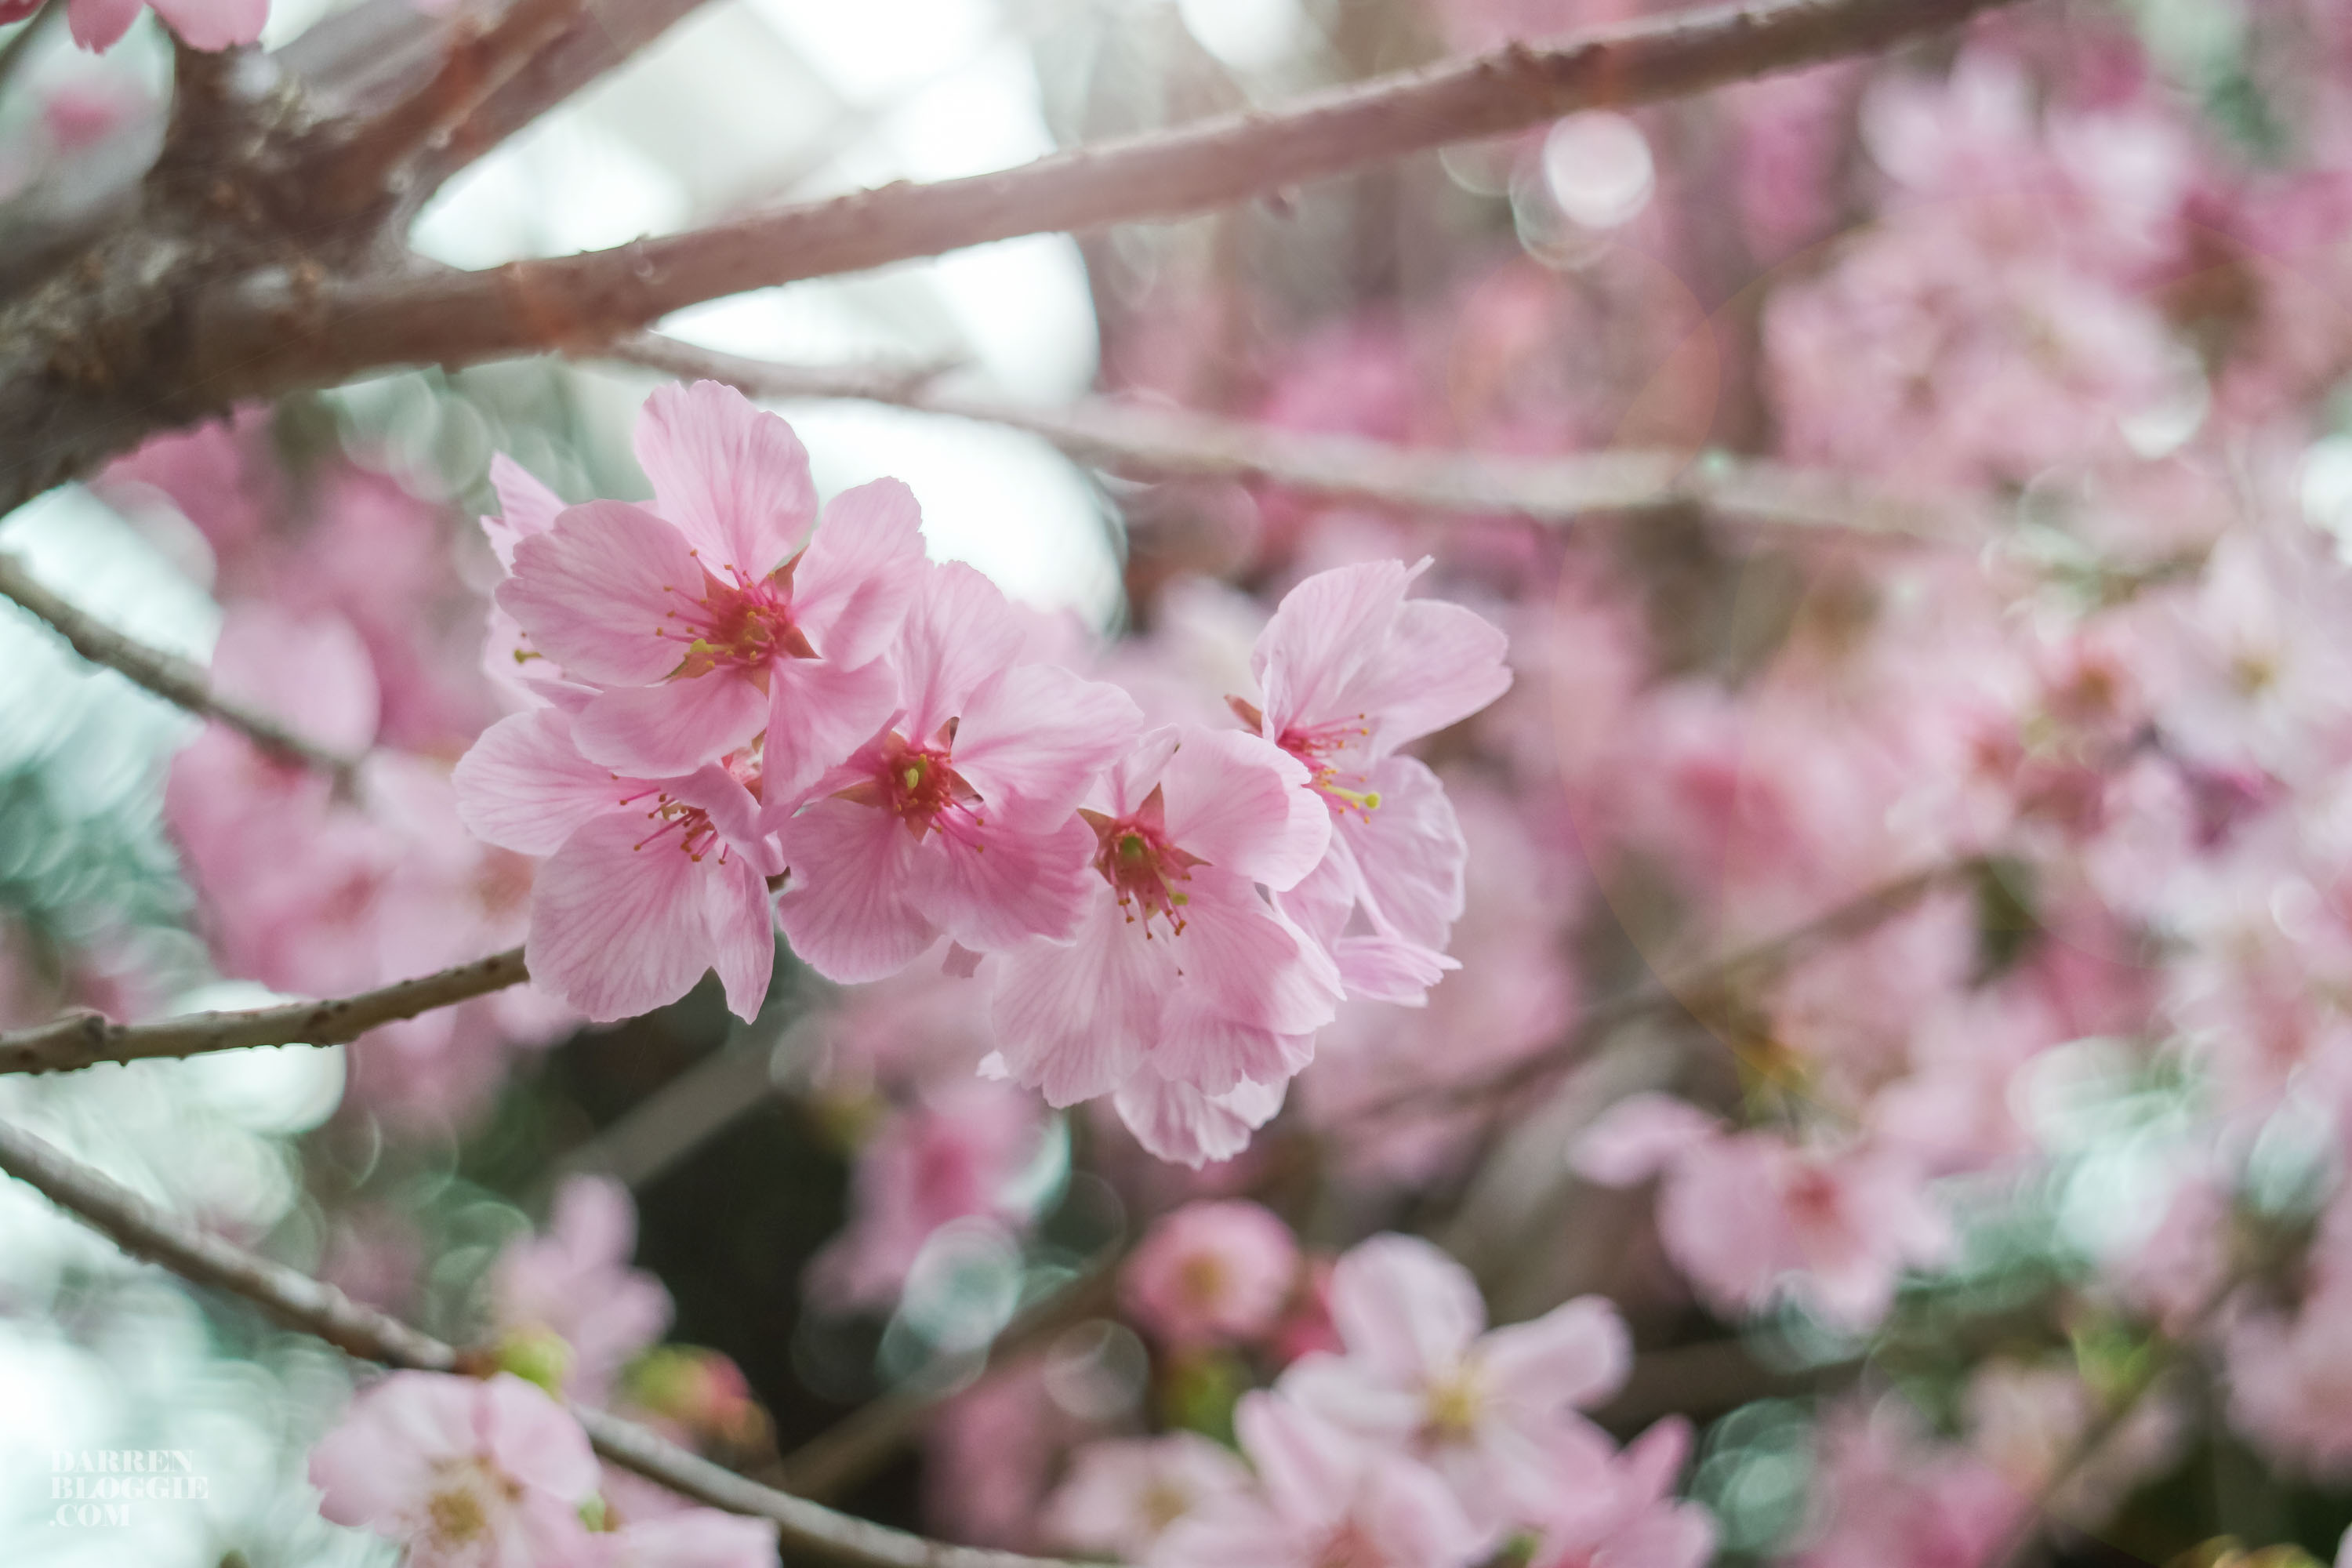 blossom-bliss-cherry-blossom-at-gardens-by-the-bay-darrenbloggie-1